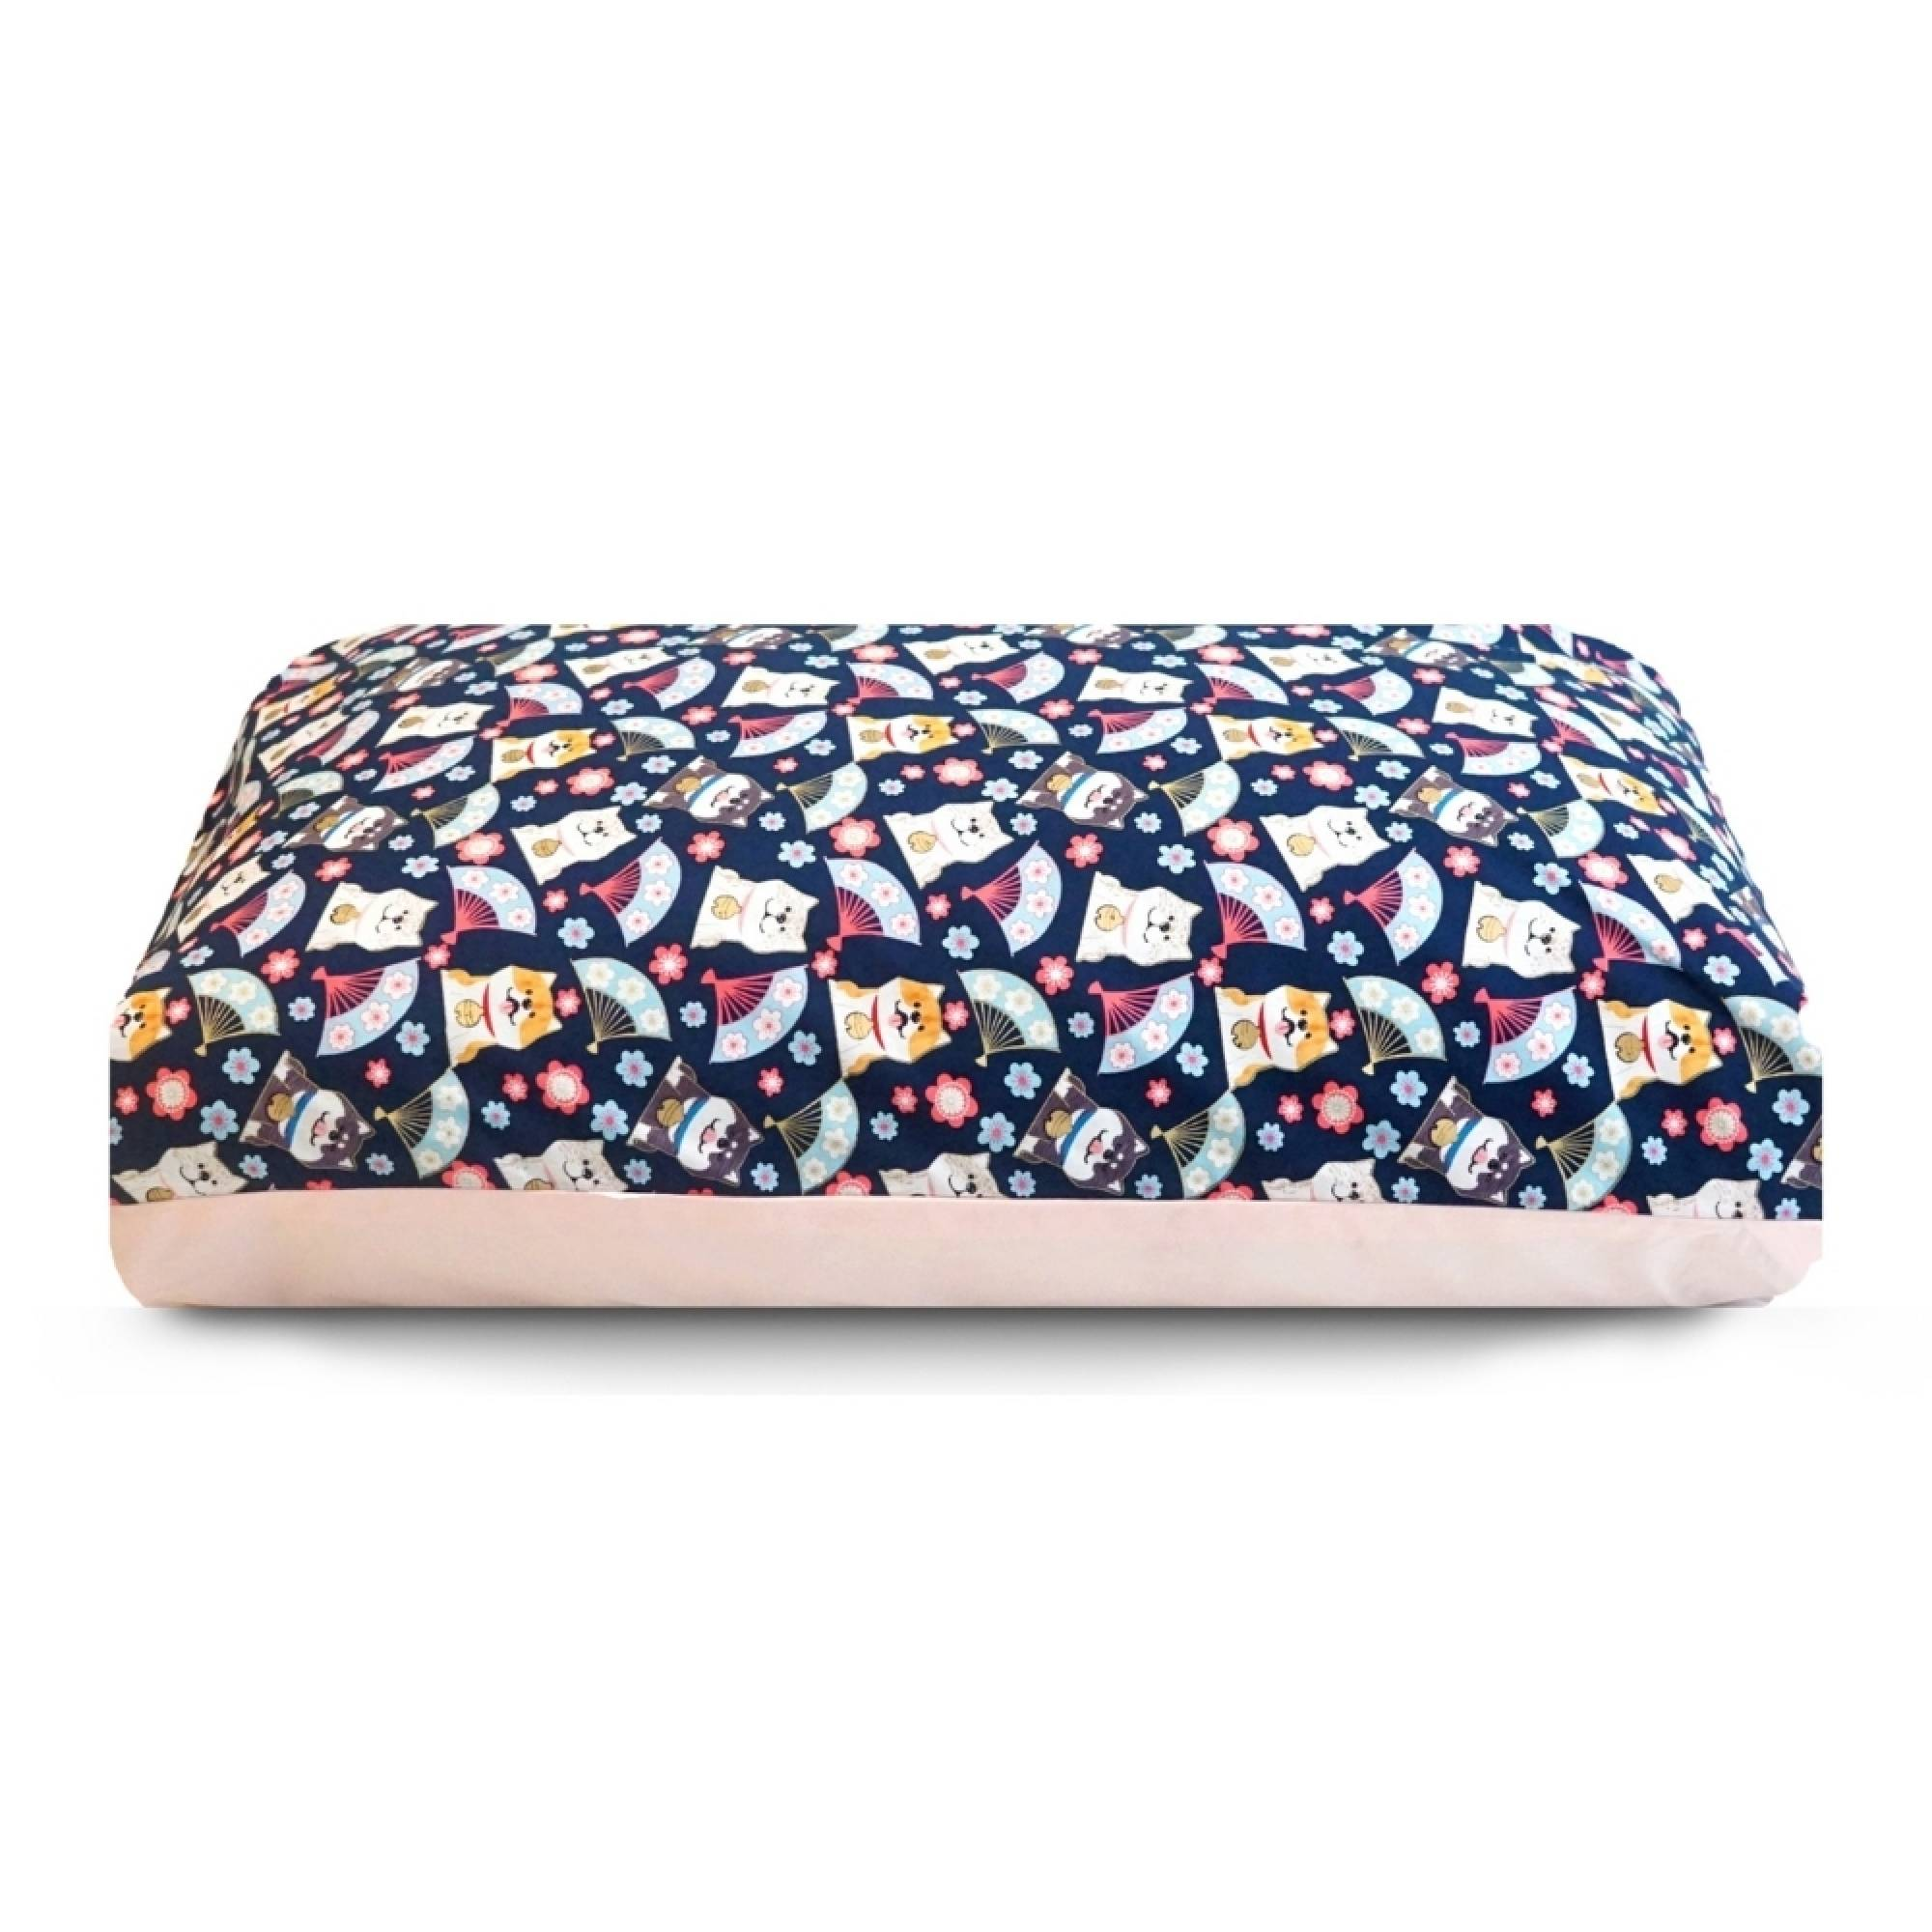 Dreamcastle Dog Bed - Shiba in Blue and Pink